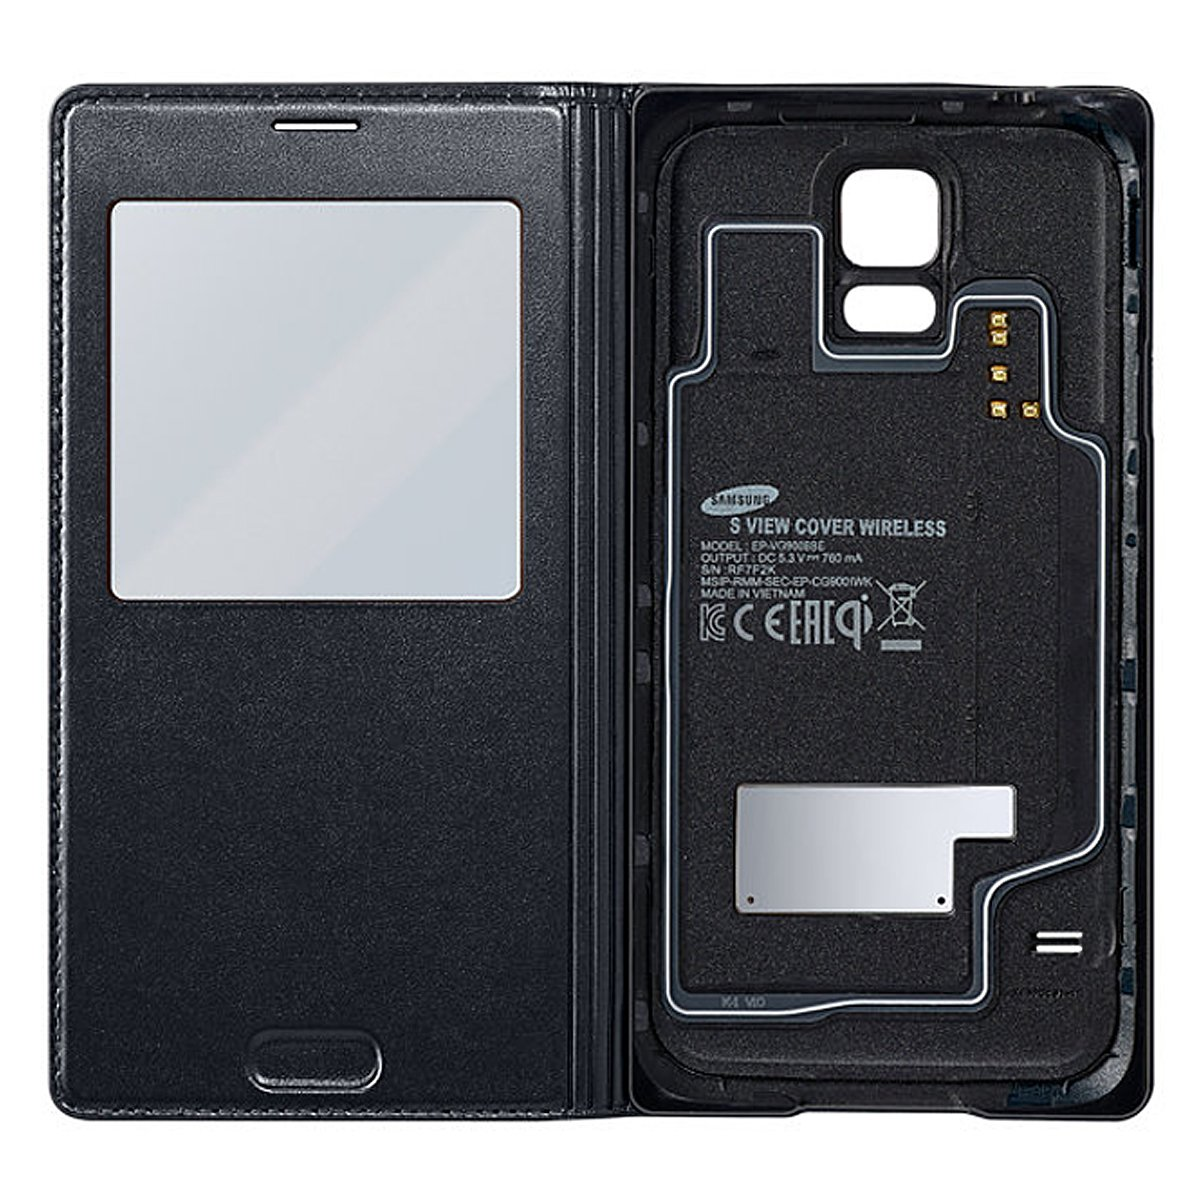 info for e4401 4ed60 Samsung Galaxy S5 S View Wireless Charging Cover (Black) EP-VG900BBEGWW